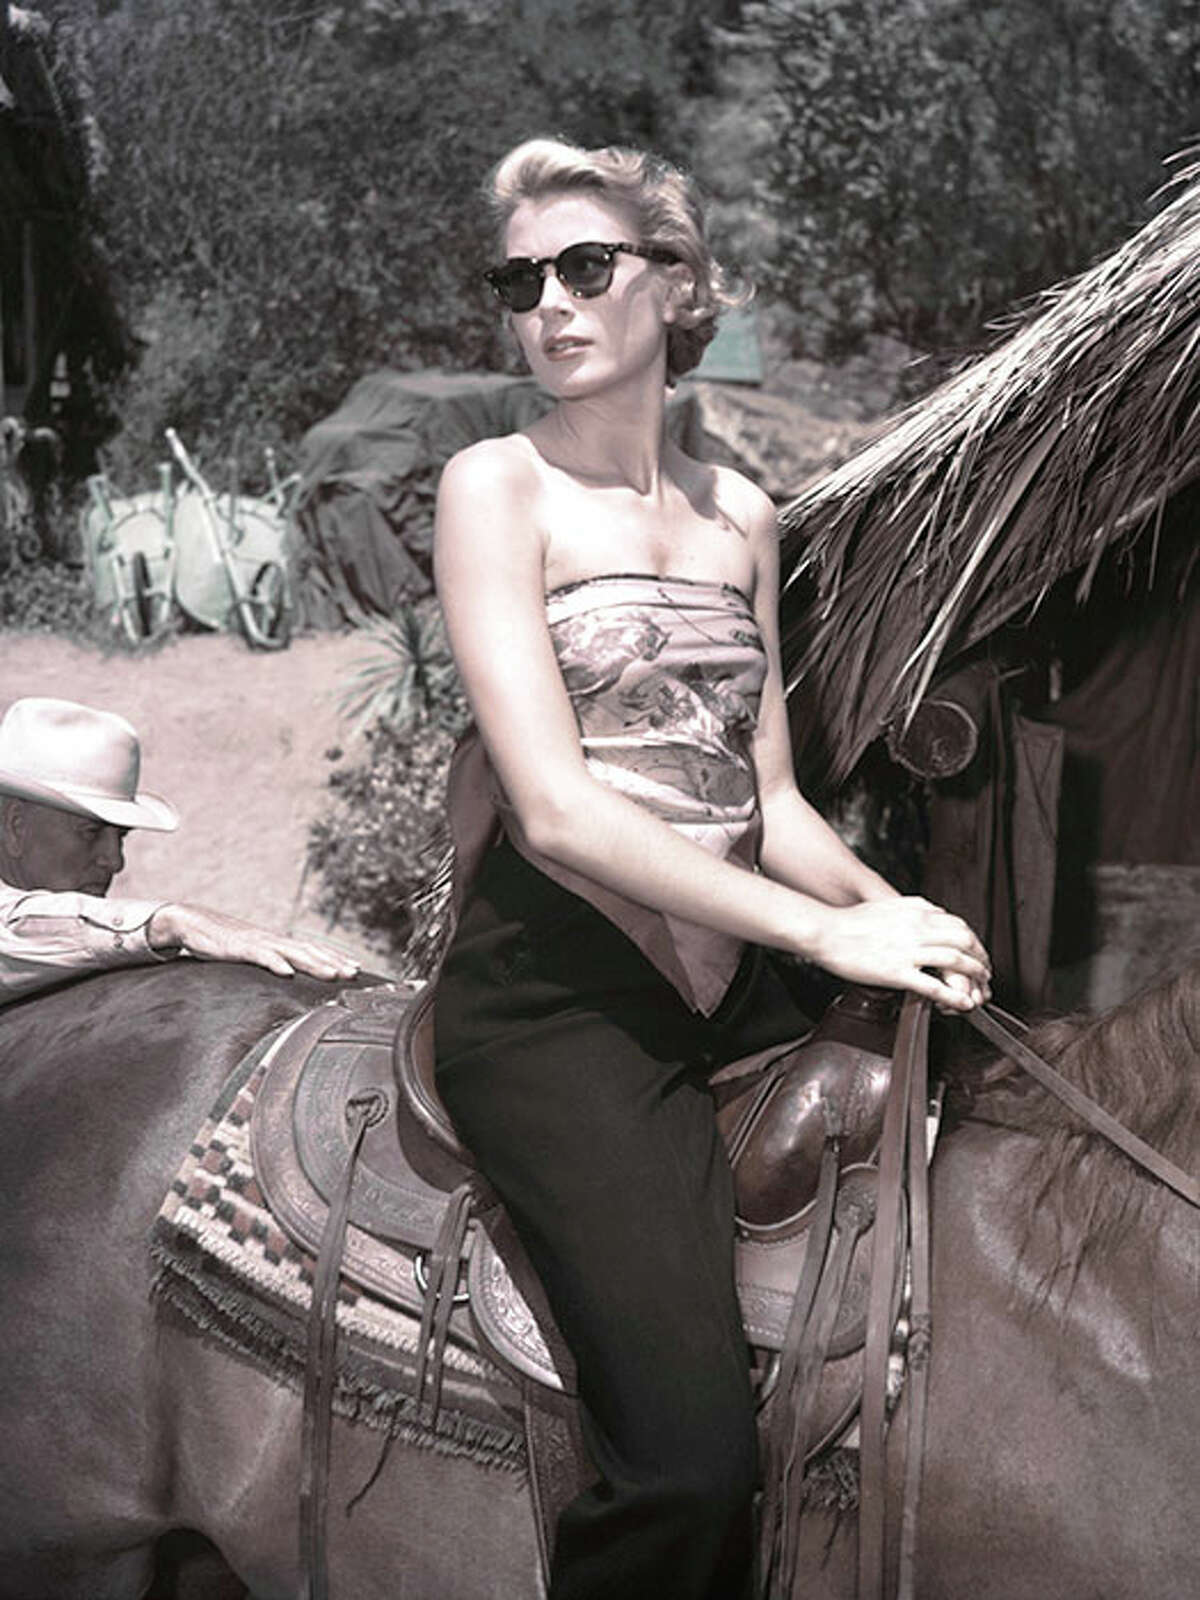 Riding a horse on set, c. 1953.Kelly's outfit equation couldn't be simpler: Sunglasses + scarf as top + black pants = relaxed glamour.